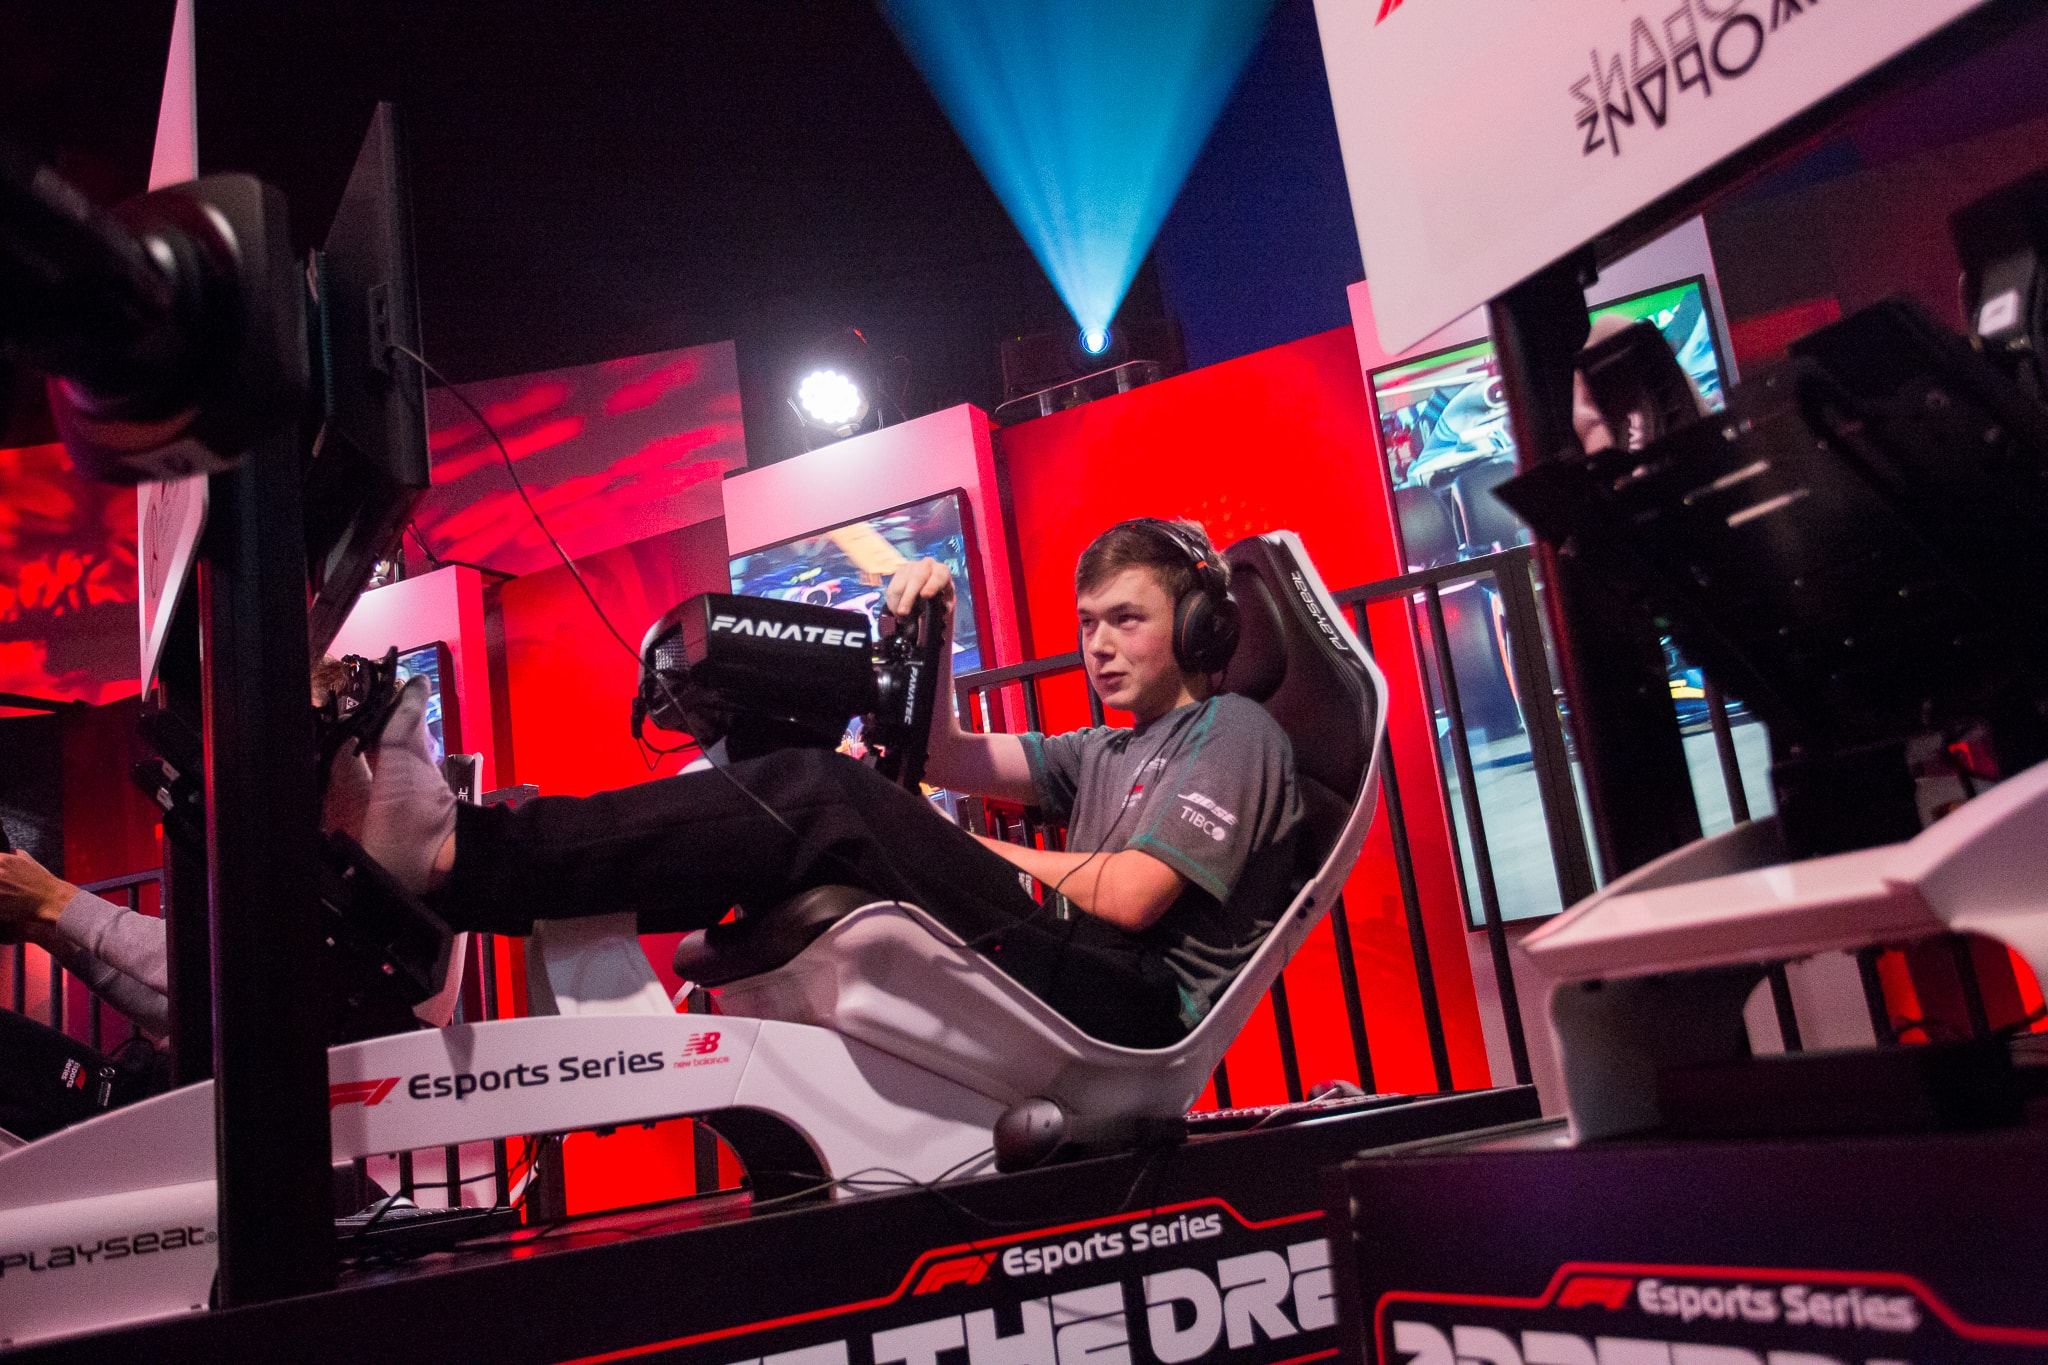 F1 New Balance Esports Series 2018 watched by 4 4 million | Gfinity Plc